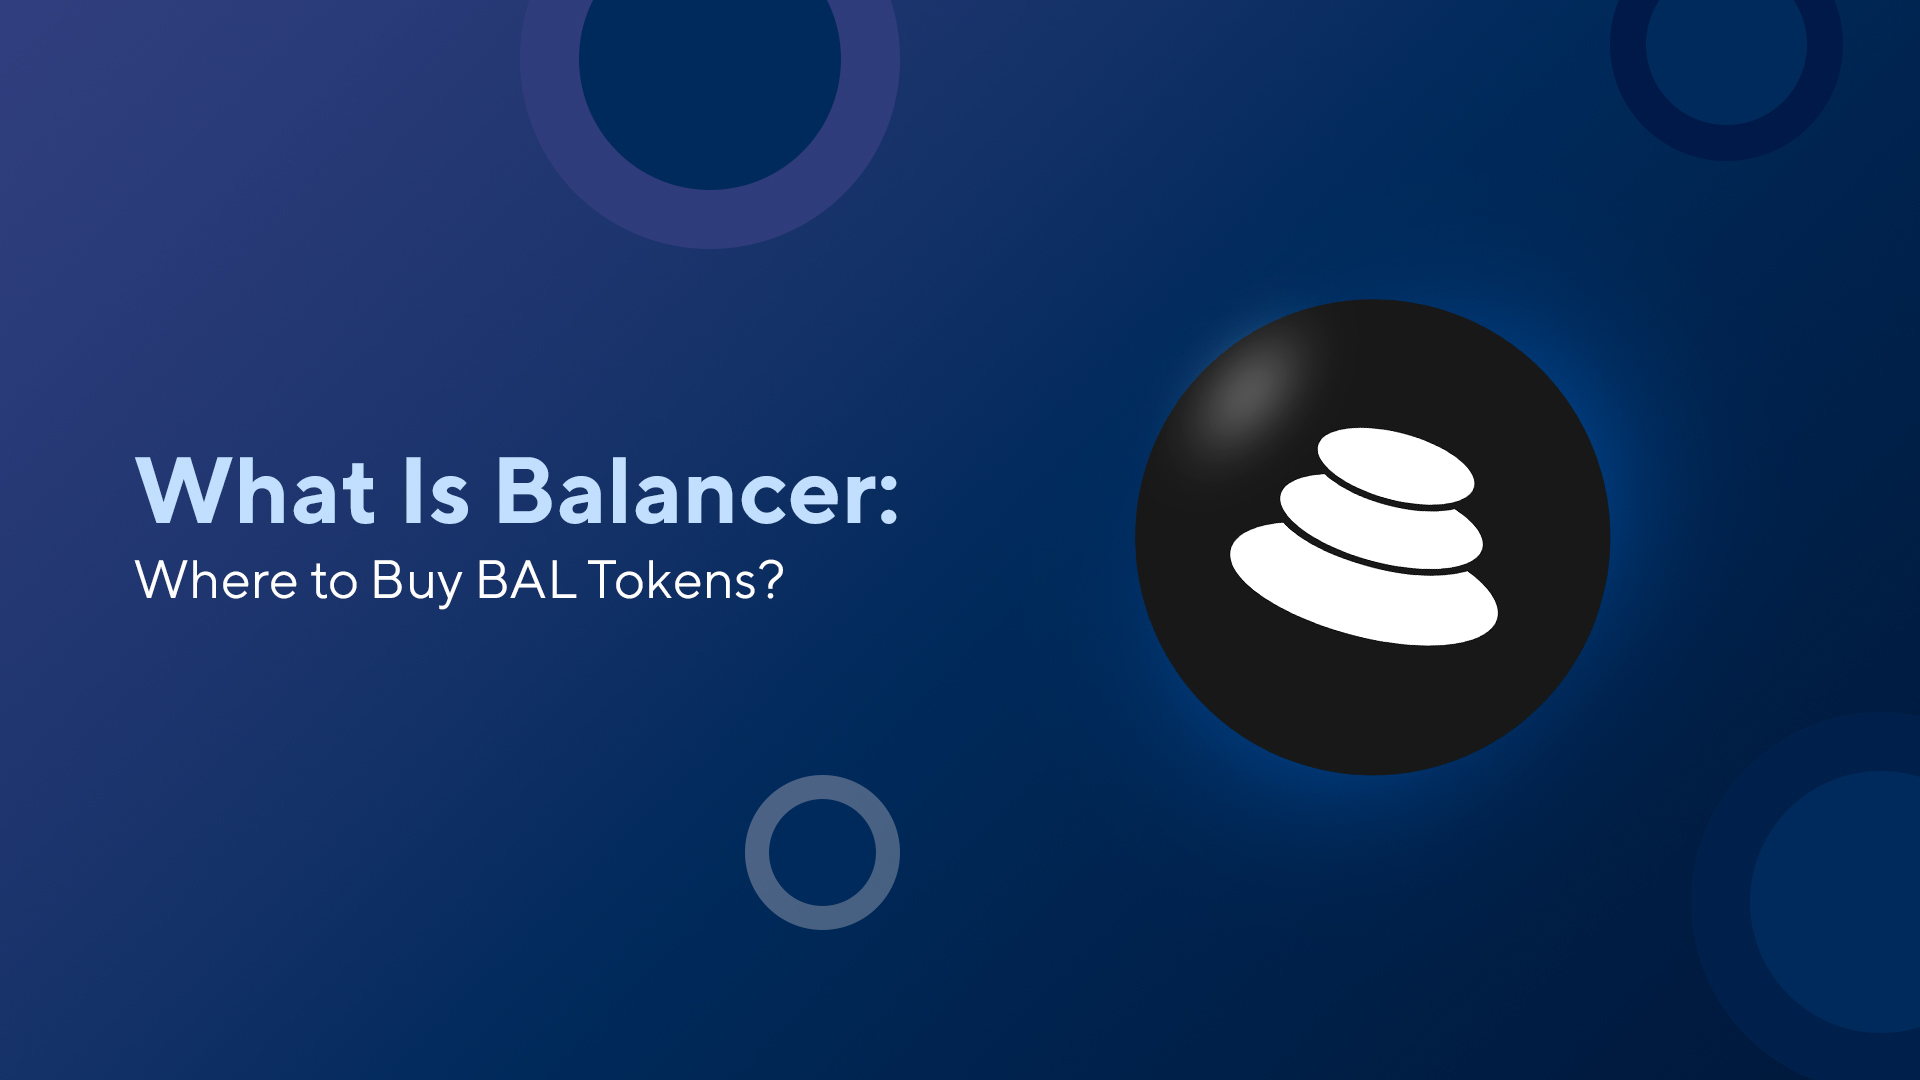 What Is Balancer: Where to Buy BAL Tokens?